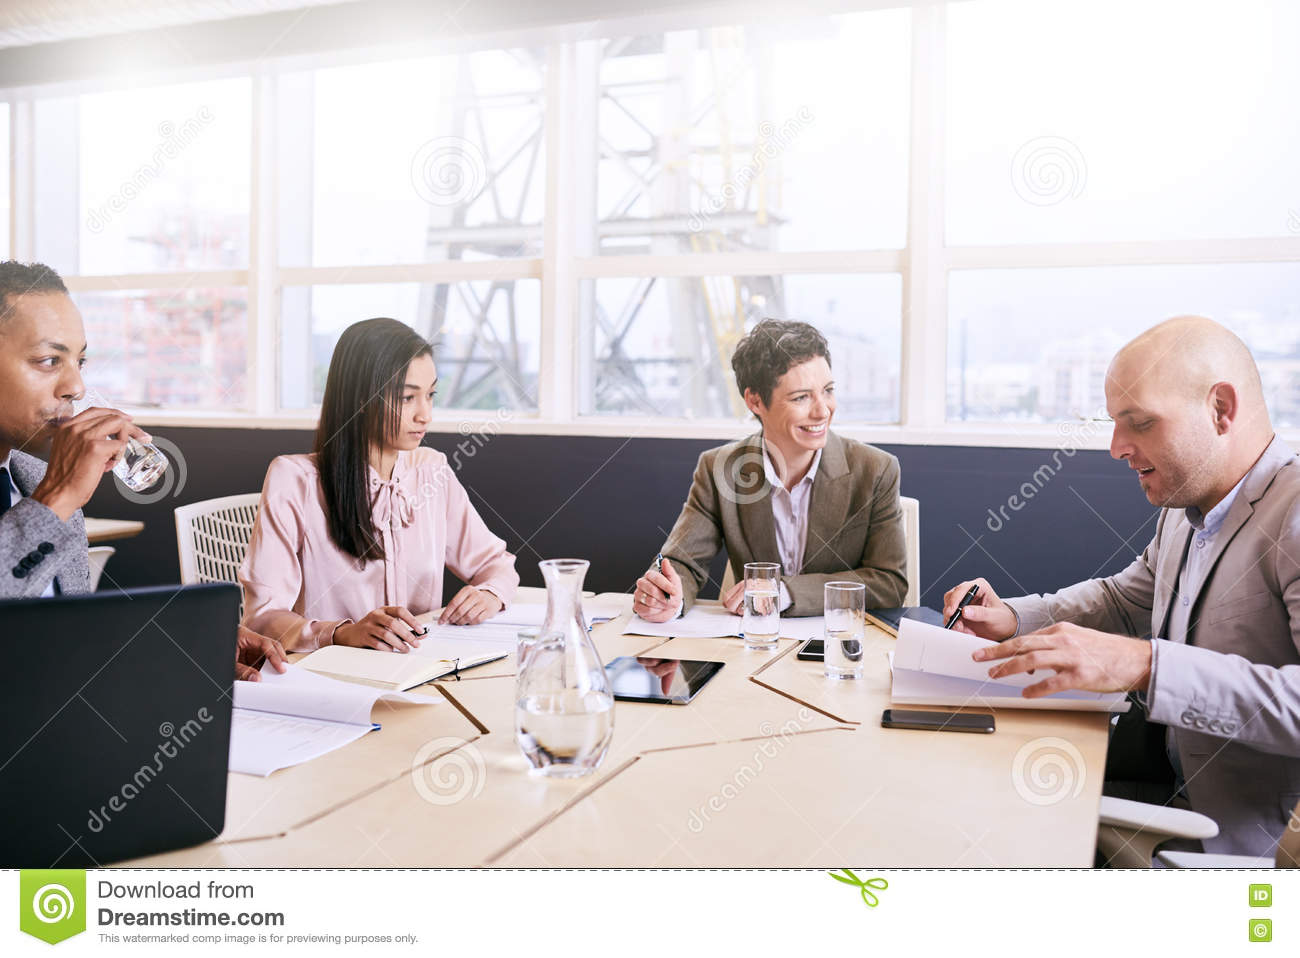 Four professional executives conducting a early morning business meeting